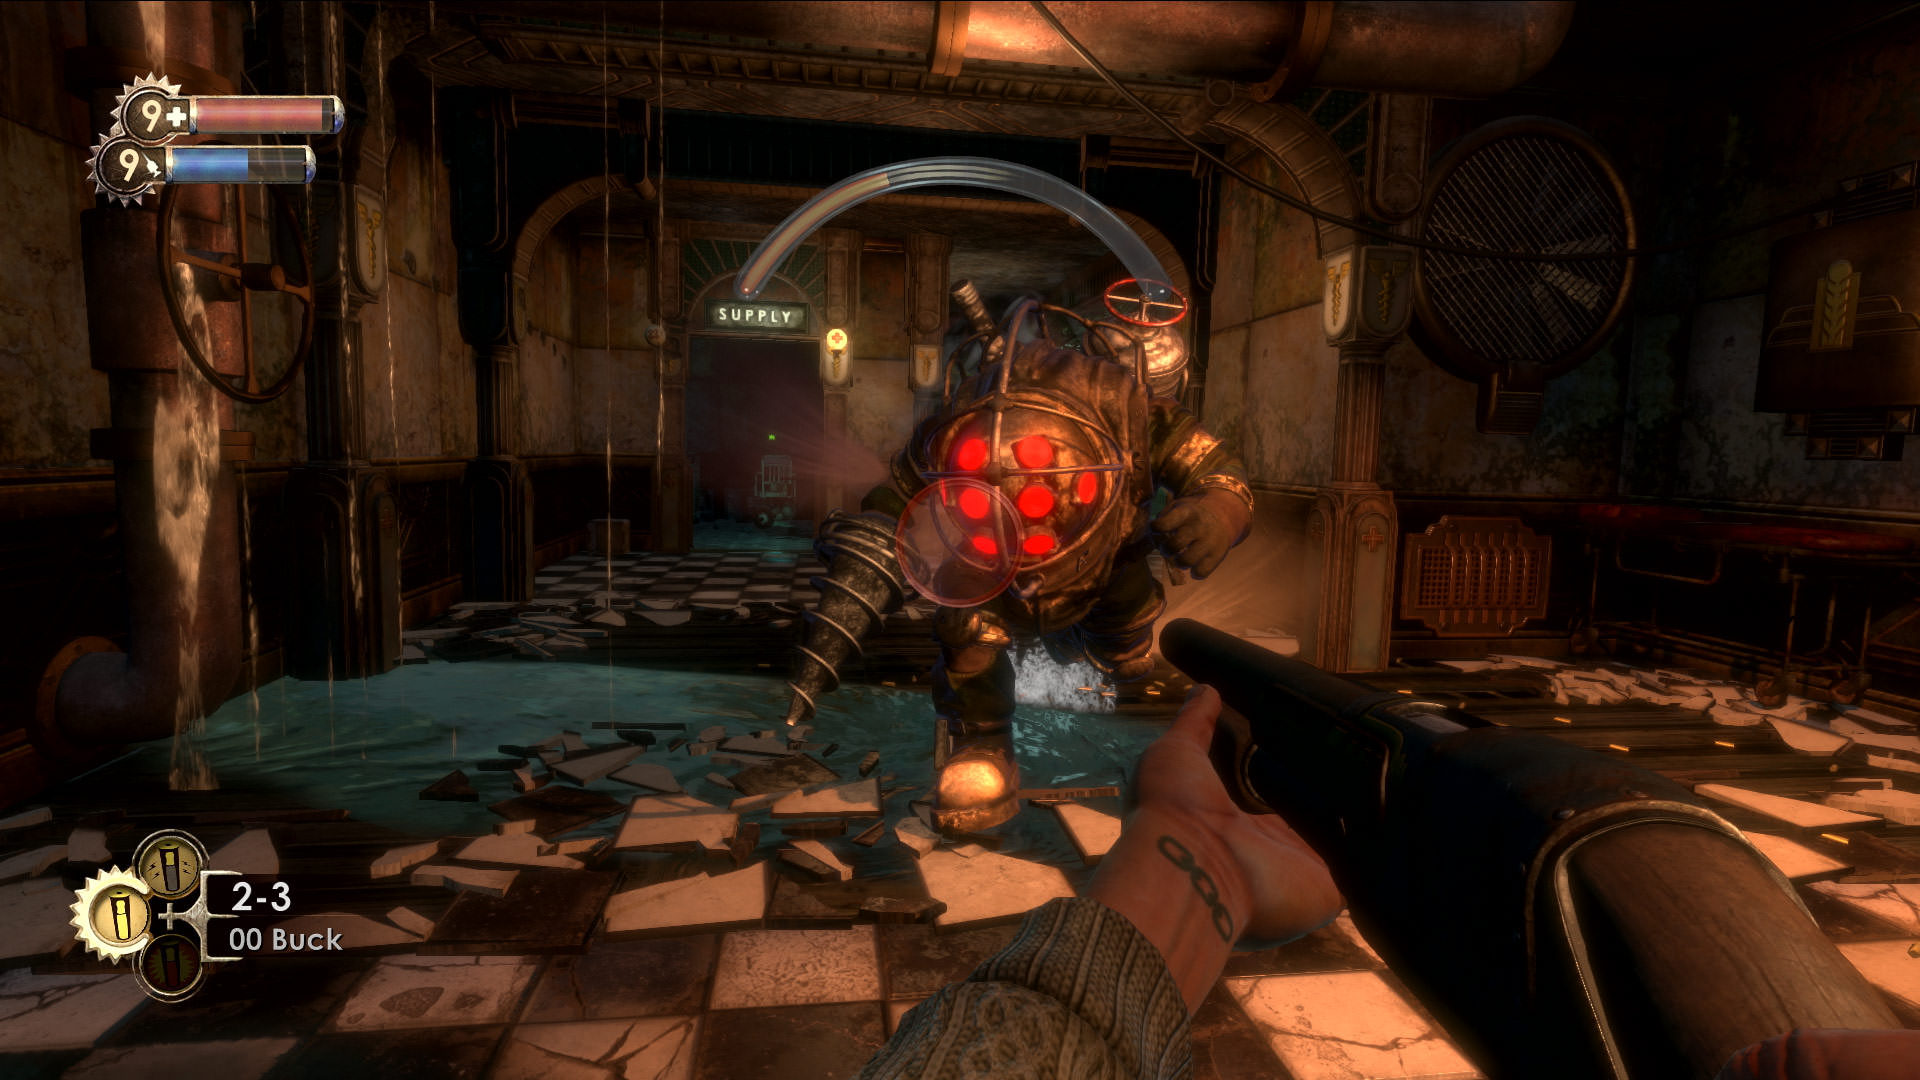 e2cadb7d 573a 4a4b 9333 1edec77b0a6e - بازی اورجینال BioShock The Collection Edition Pack پلی‌استیشن ۴